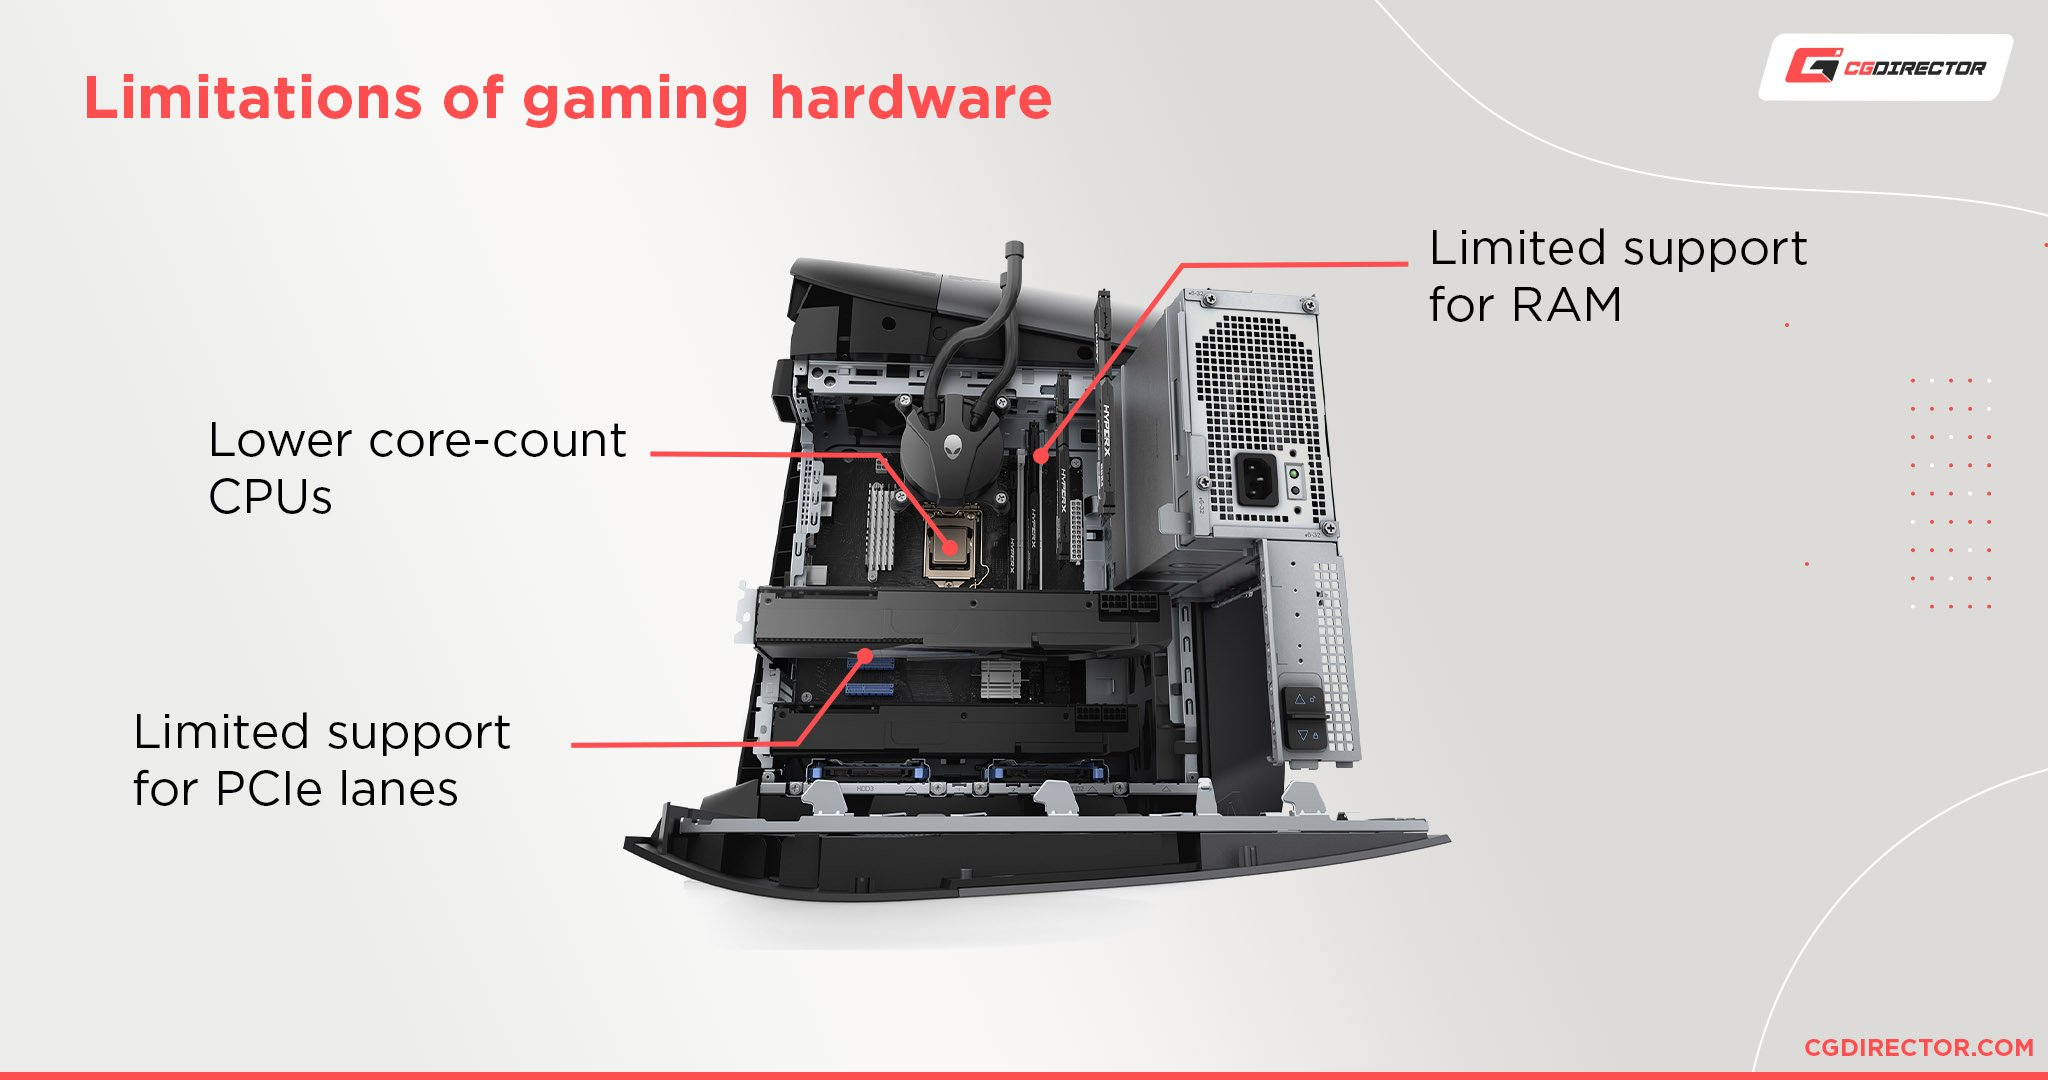 Limitations of Gaming Hardware for professional workloads